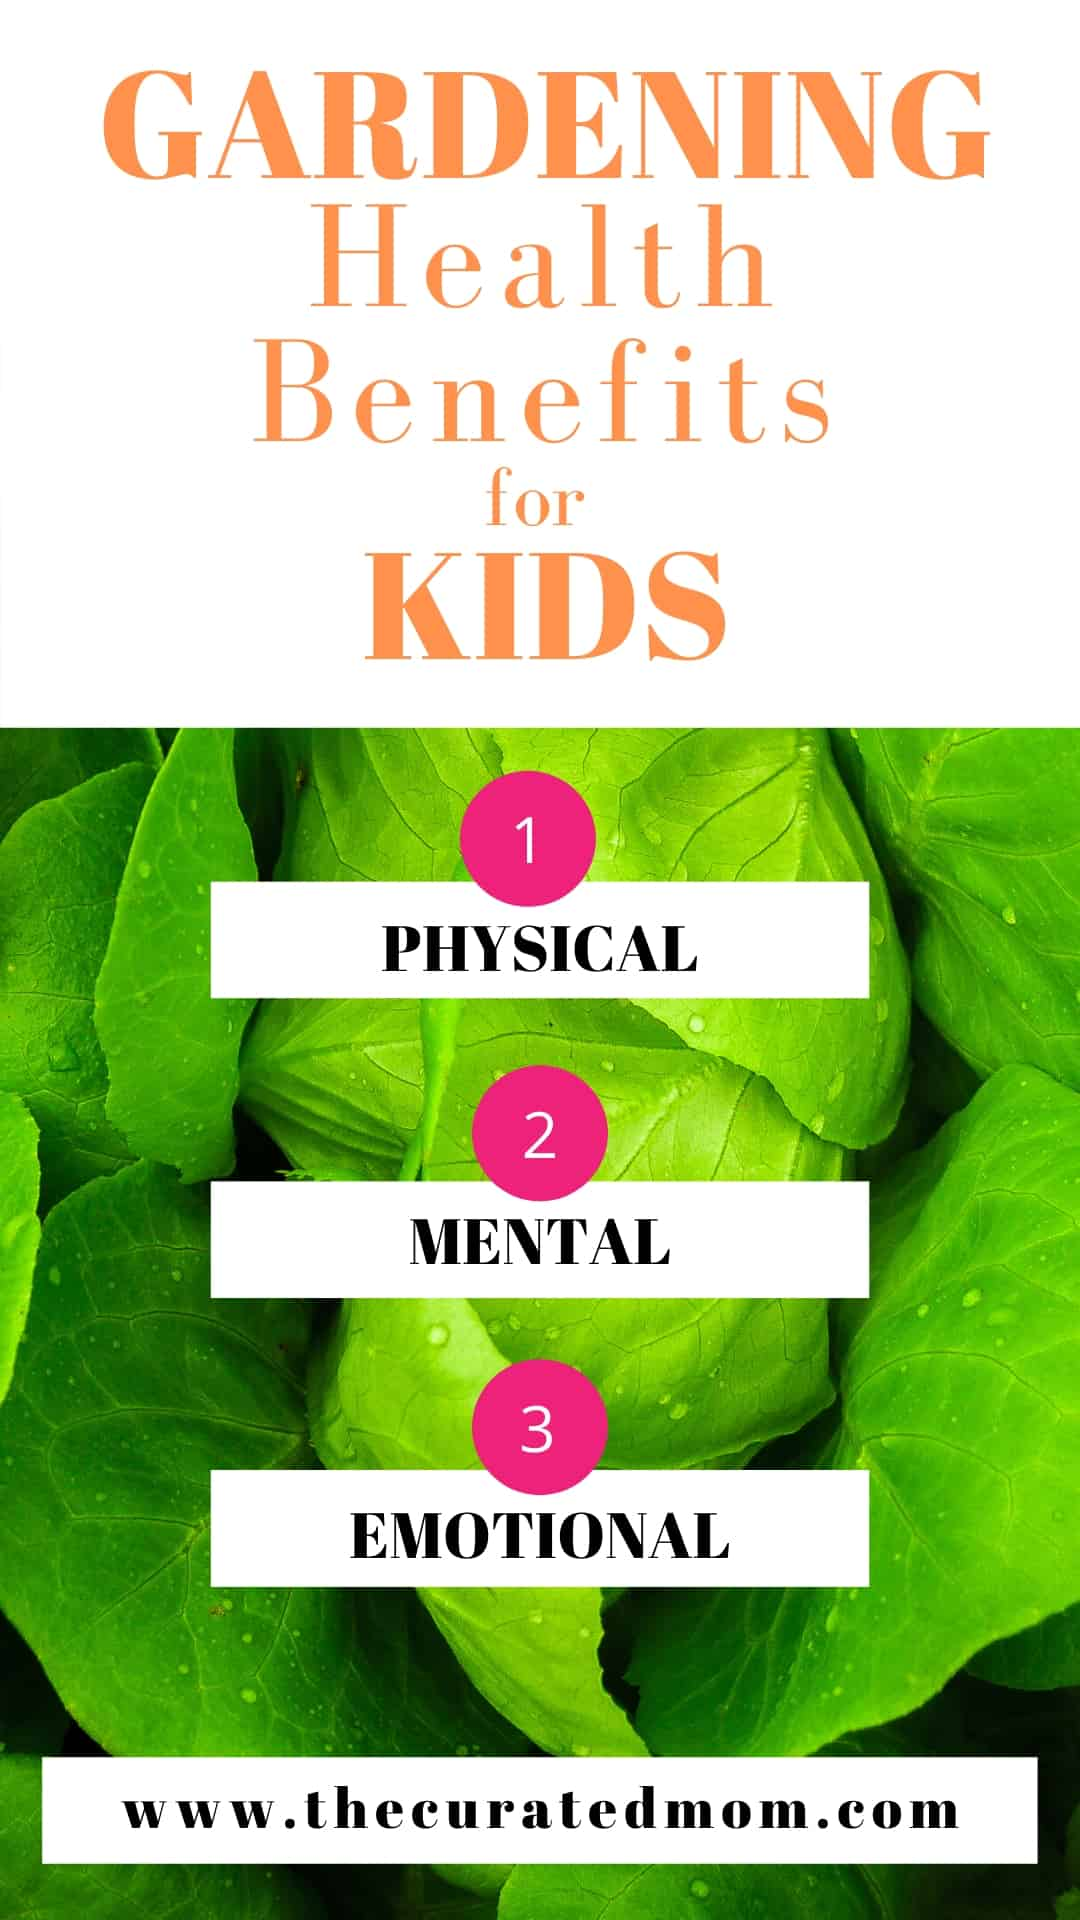 Spinach leaves in the importance of gardening post with text reading gardening health benefits for kids 1) physical 2) mental 3) emotional